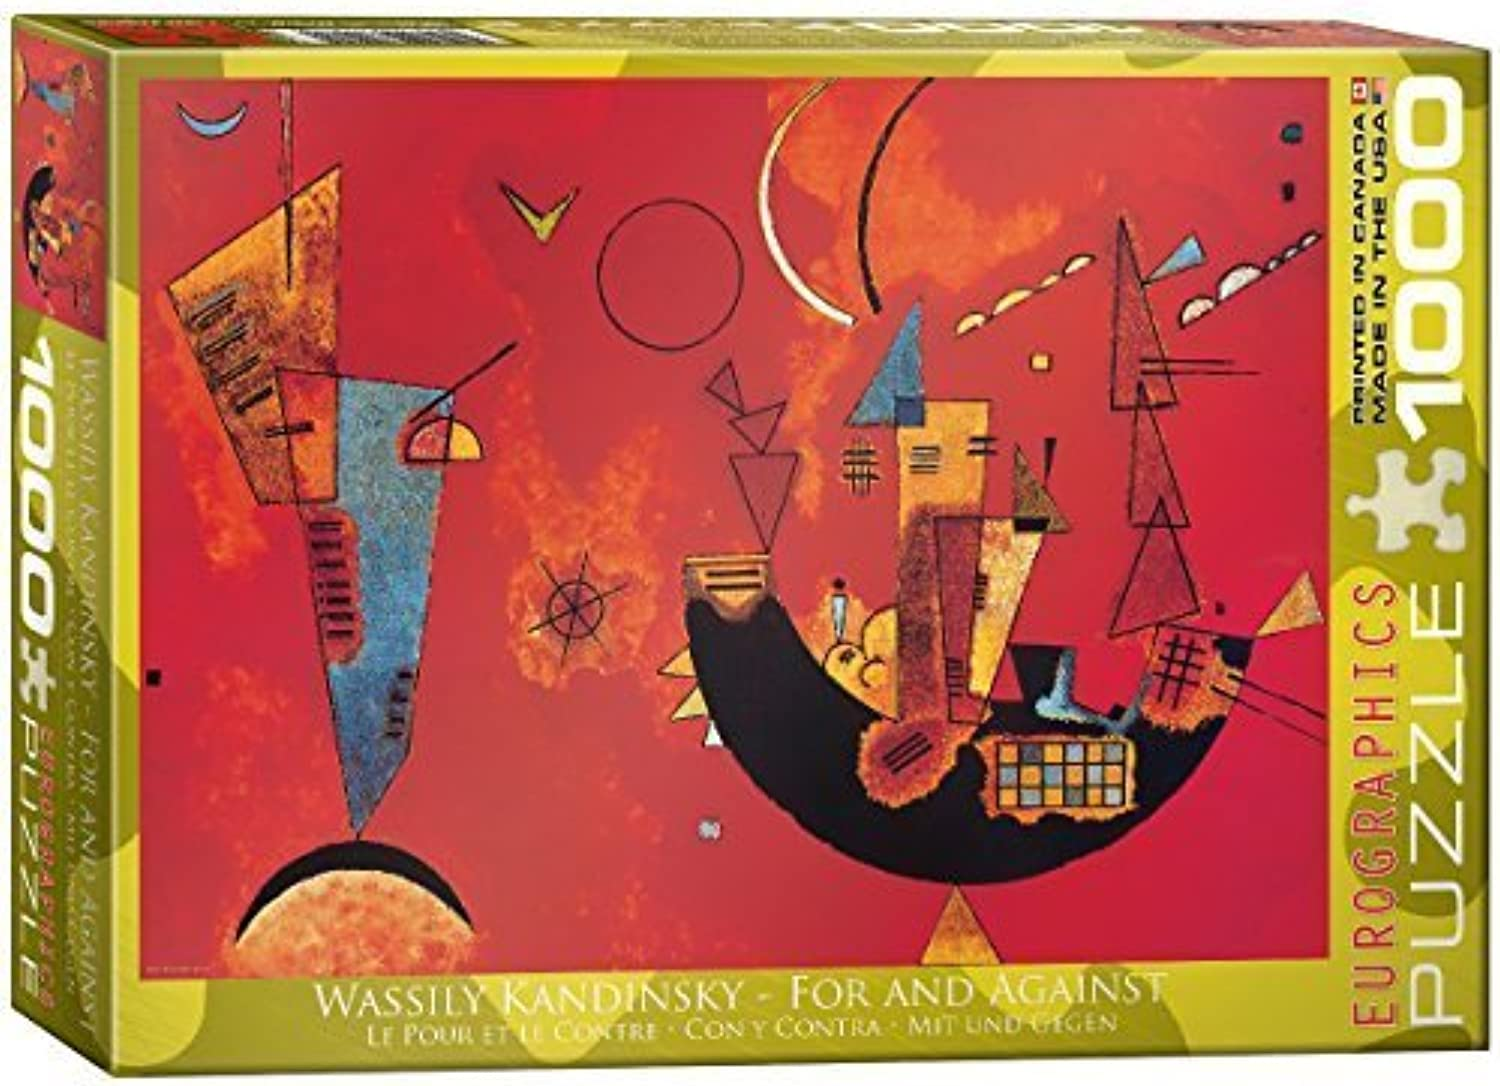 descuento online Eurographics For and Against by Wassily Kandinsky Puzzle (1000 (1000 (1000 Pieces) by Eurographics  marcas en línea venta barata